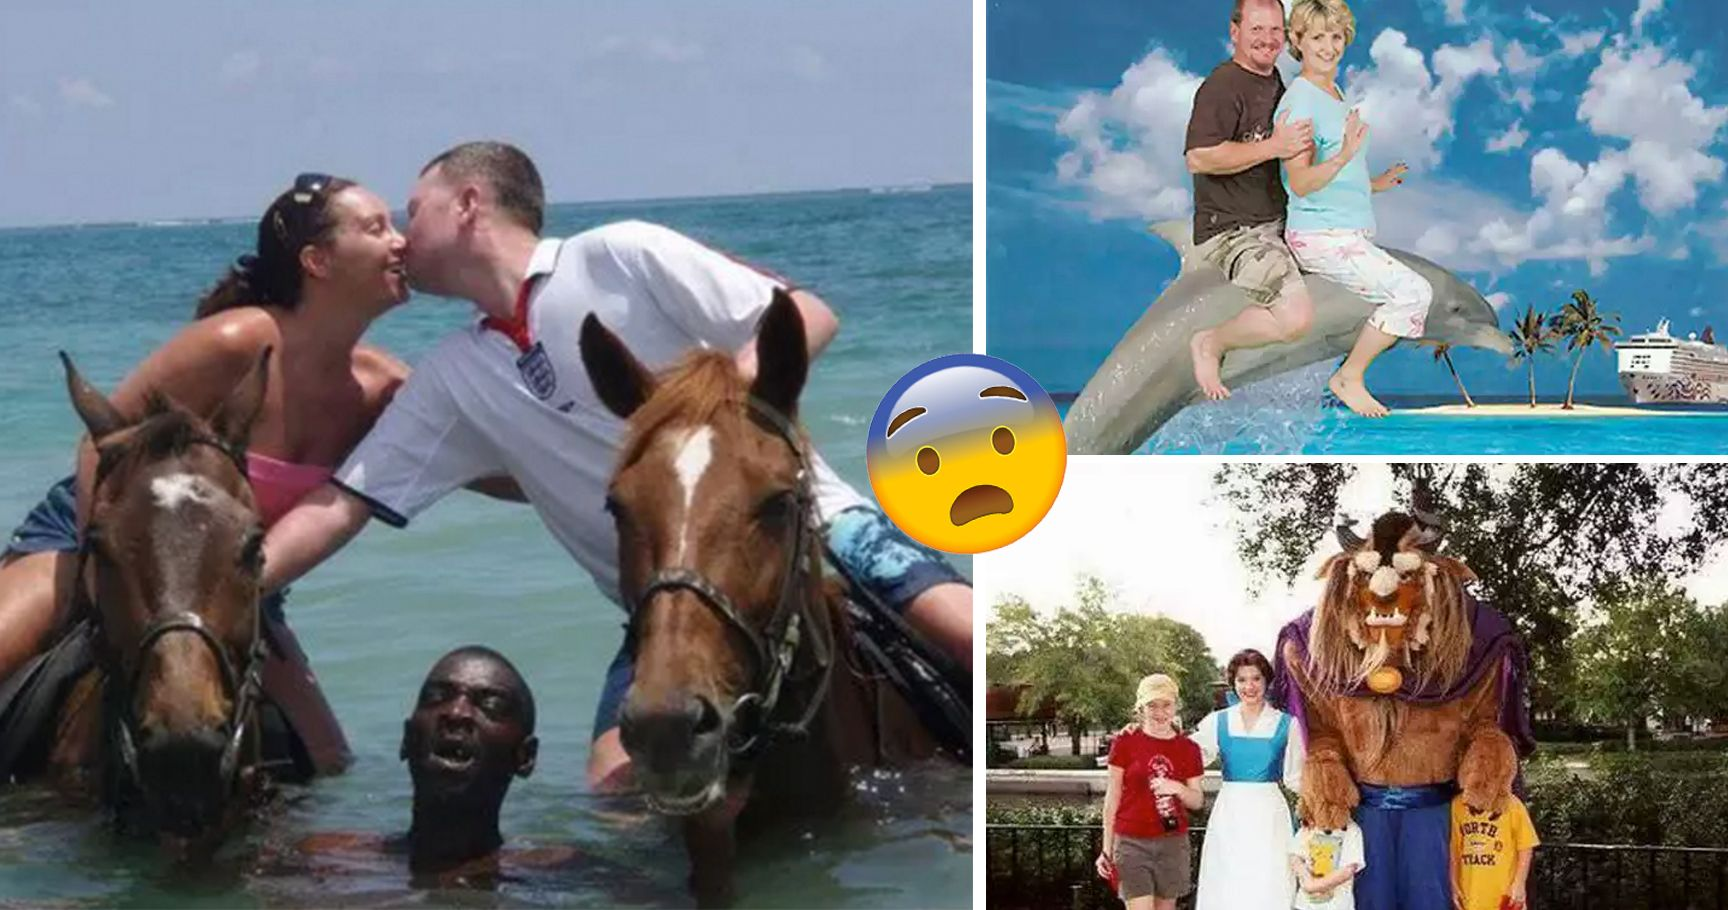 15 Hilariously Disturbing Family Photo Fails That Prove The World Is A Scary Place